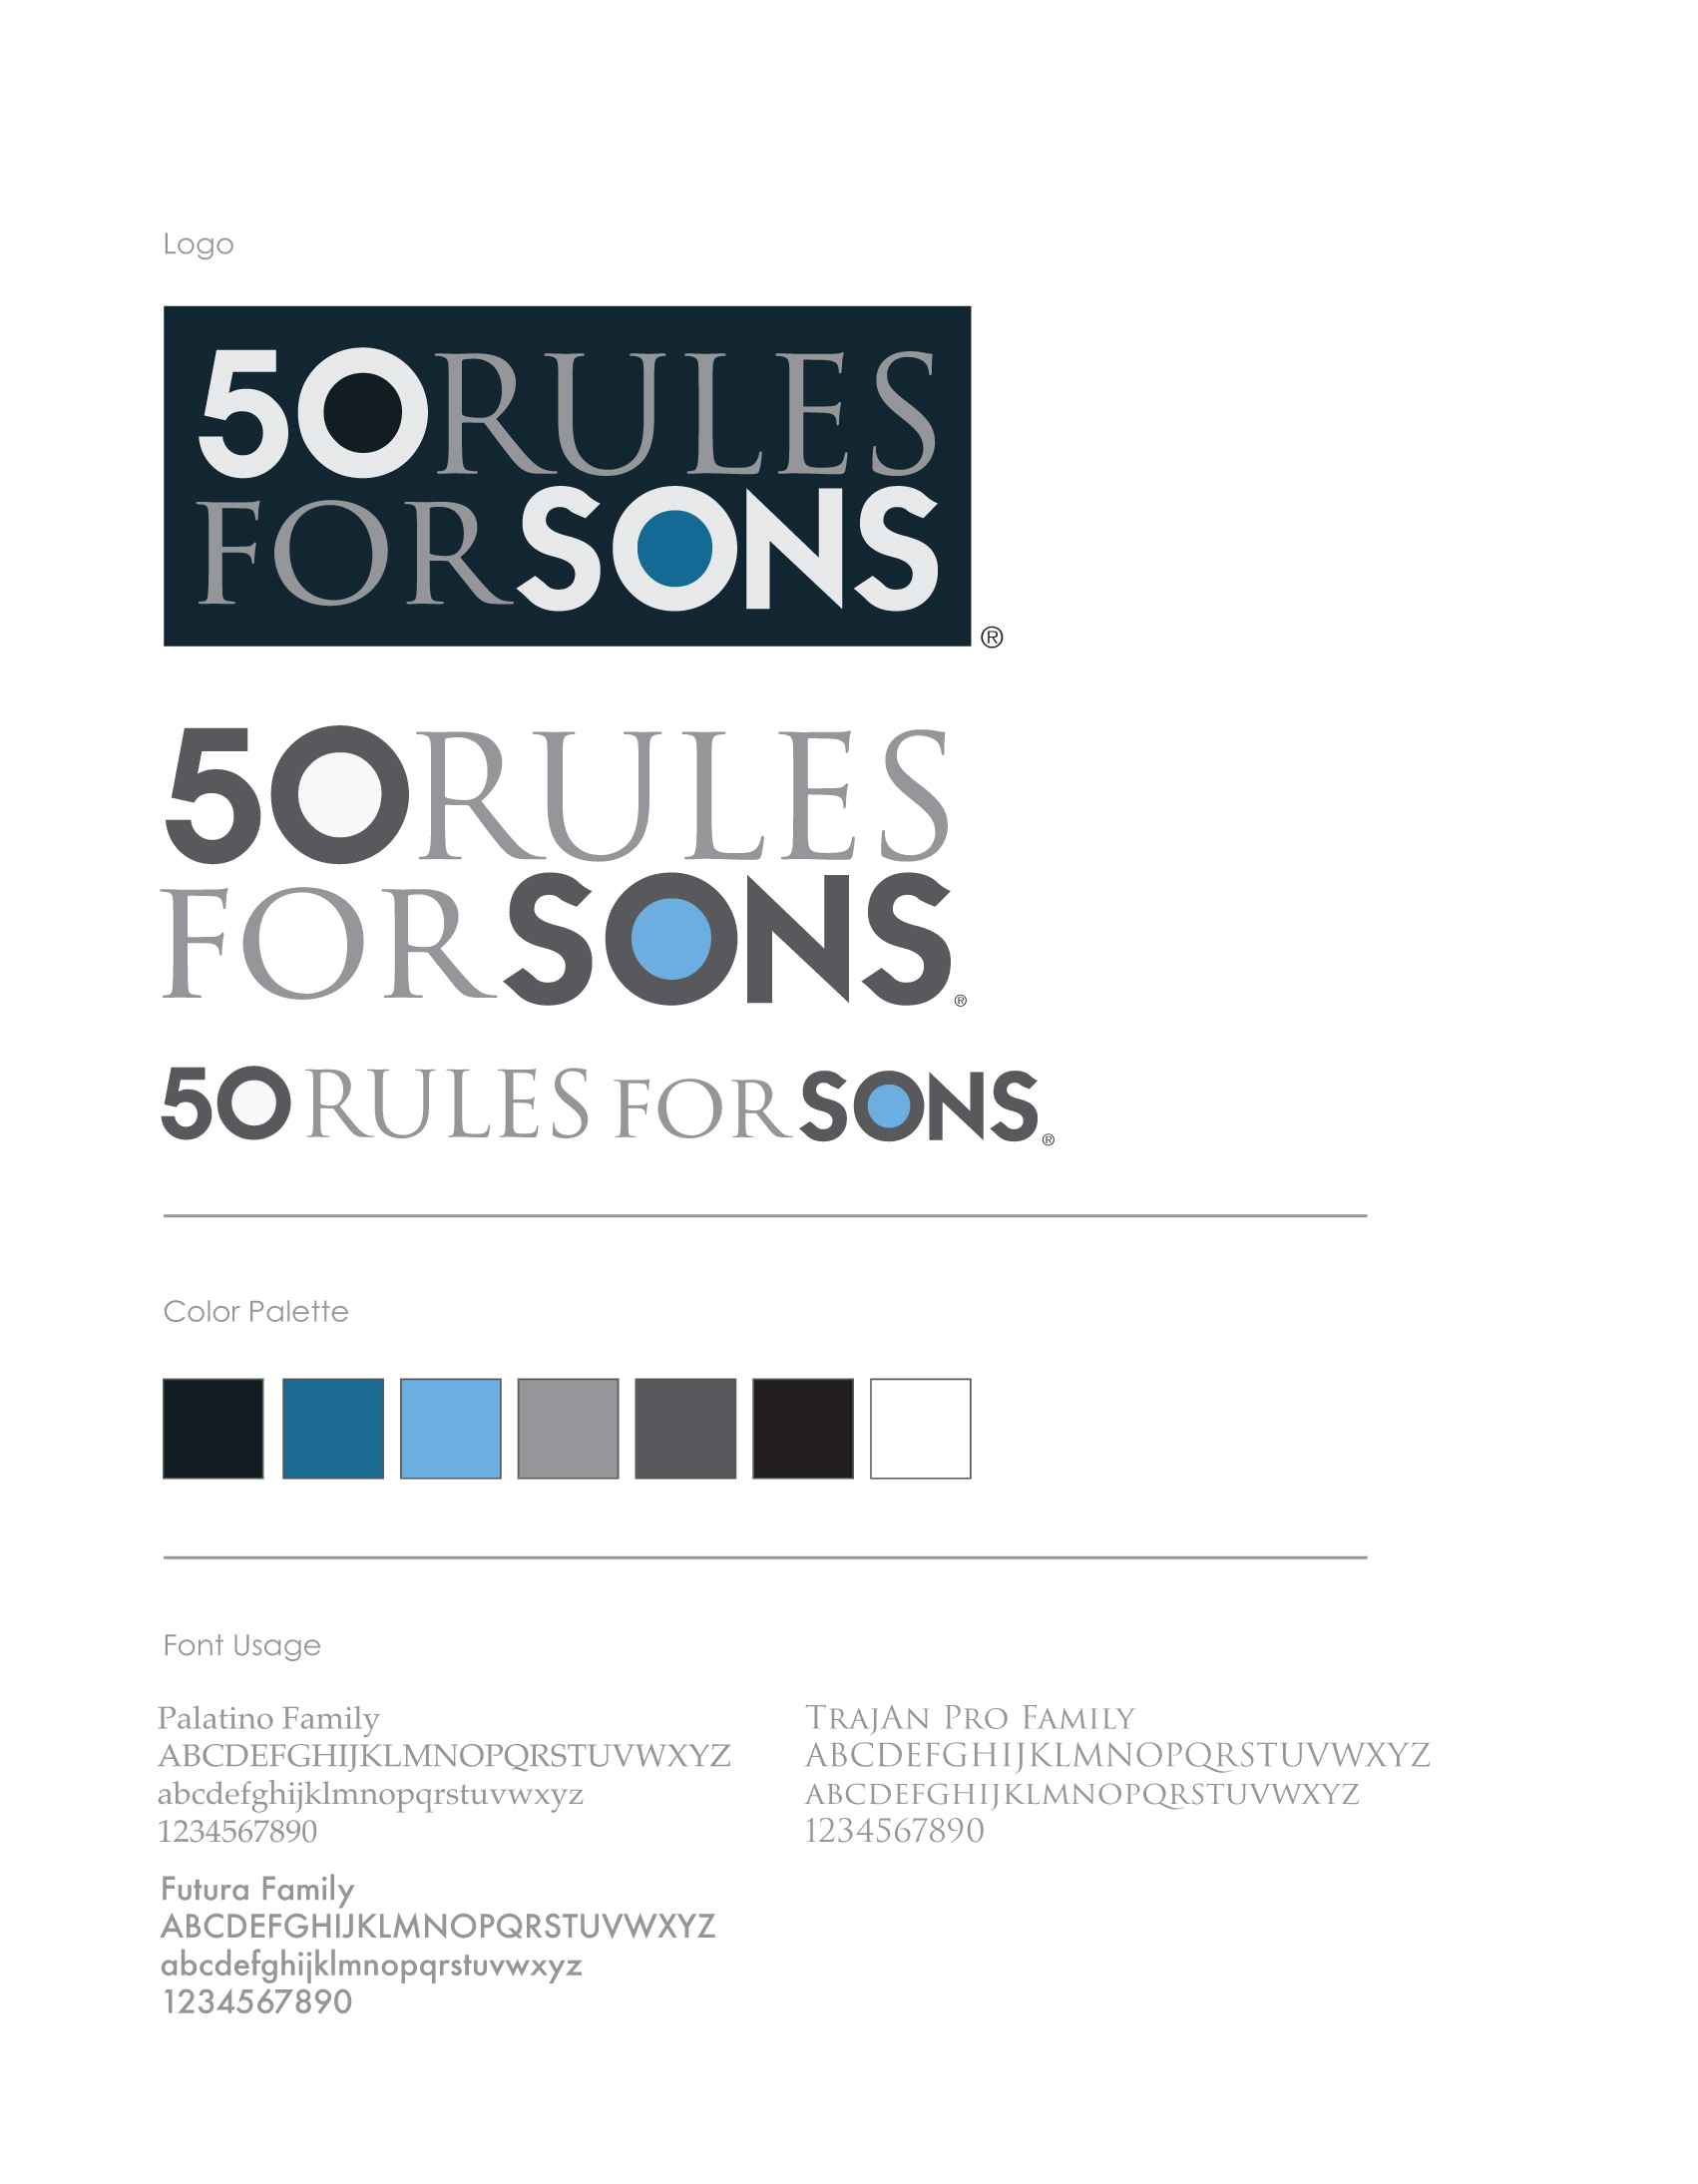 50 Rules For Sons – Brand Identity